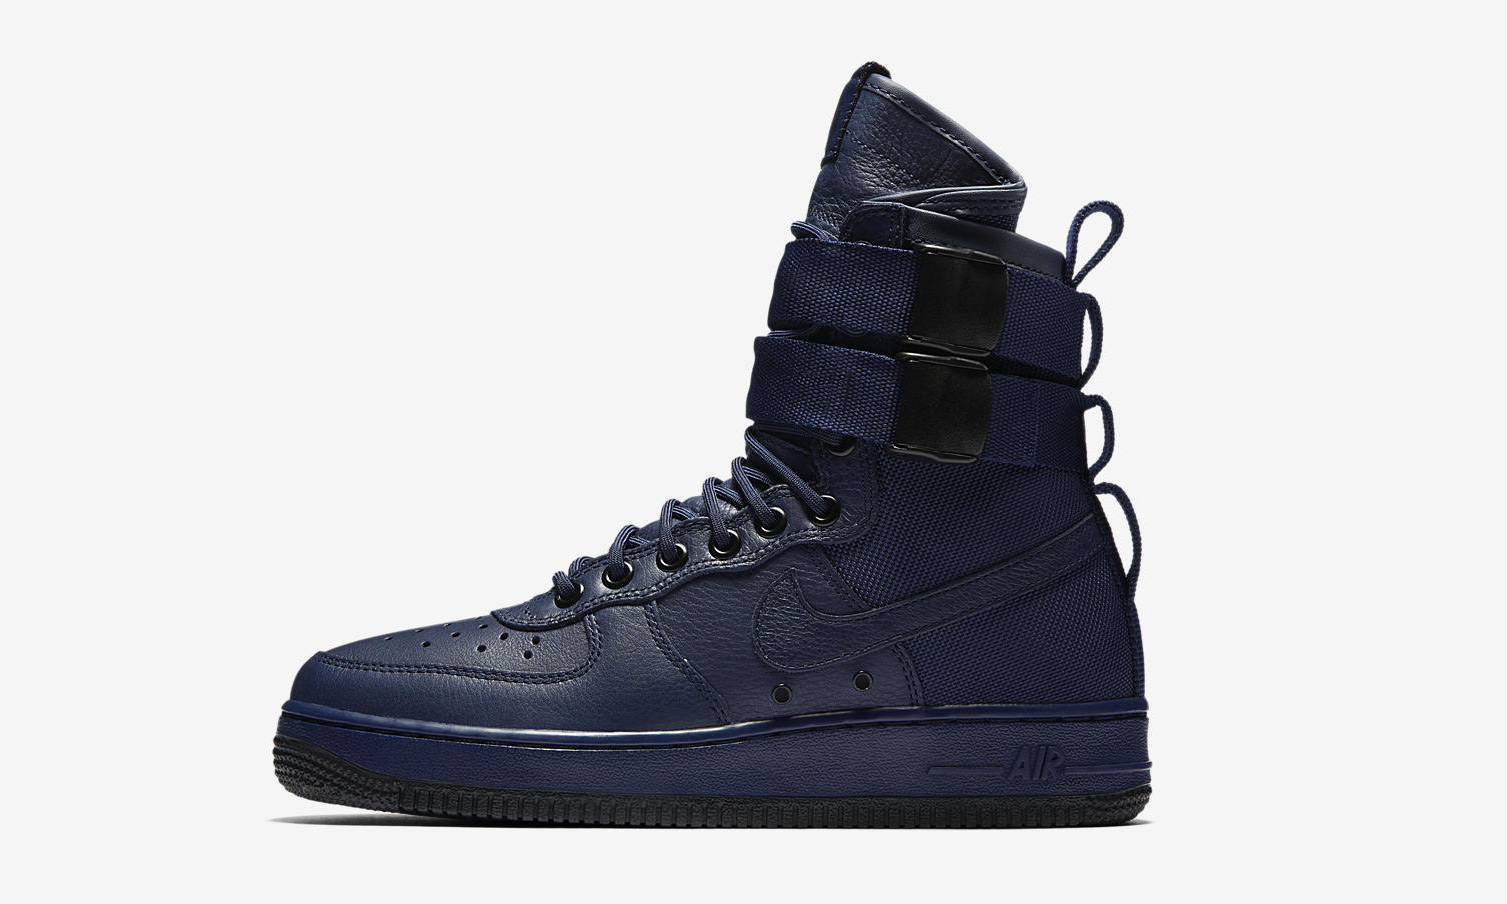 nike-special-forces-air-force-1-new-colors-6